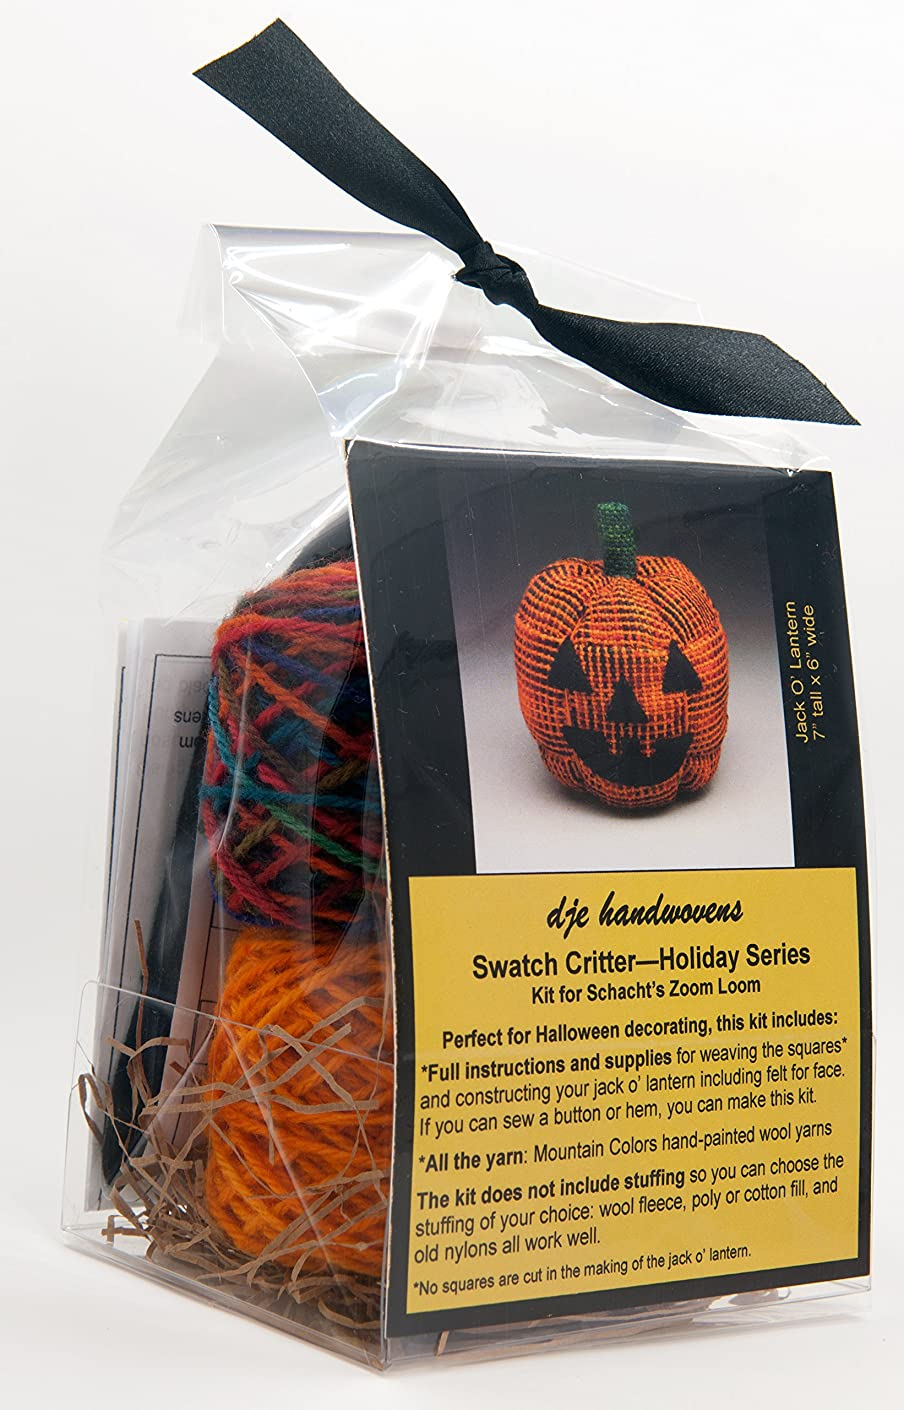 DJE Handwovens Swatch Critter Holiday Series Kit for Schacht Zoom Loom (Jack o' Lantern)